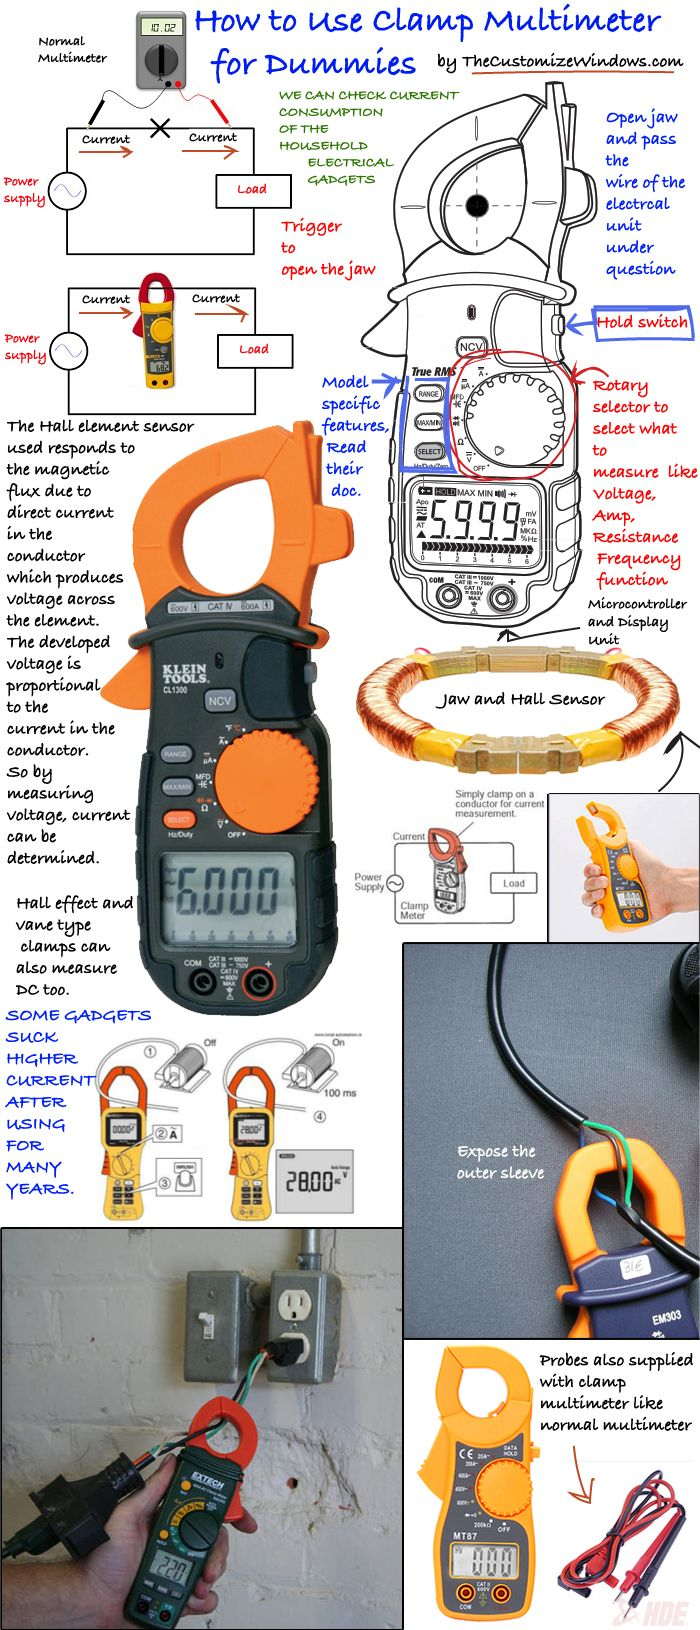 medium resolution of it is great for testing real current consumed by electrical gadgets used in our homes a clamp meter is like a digital multimeter with a jaw which can